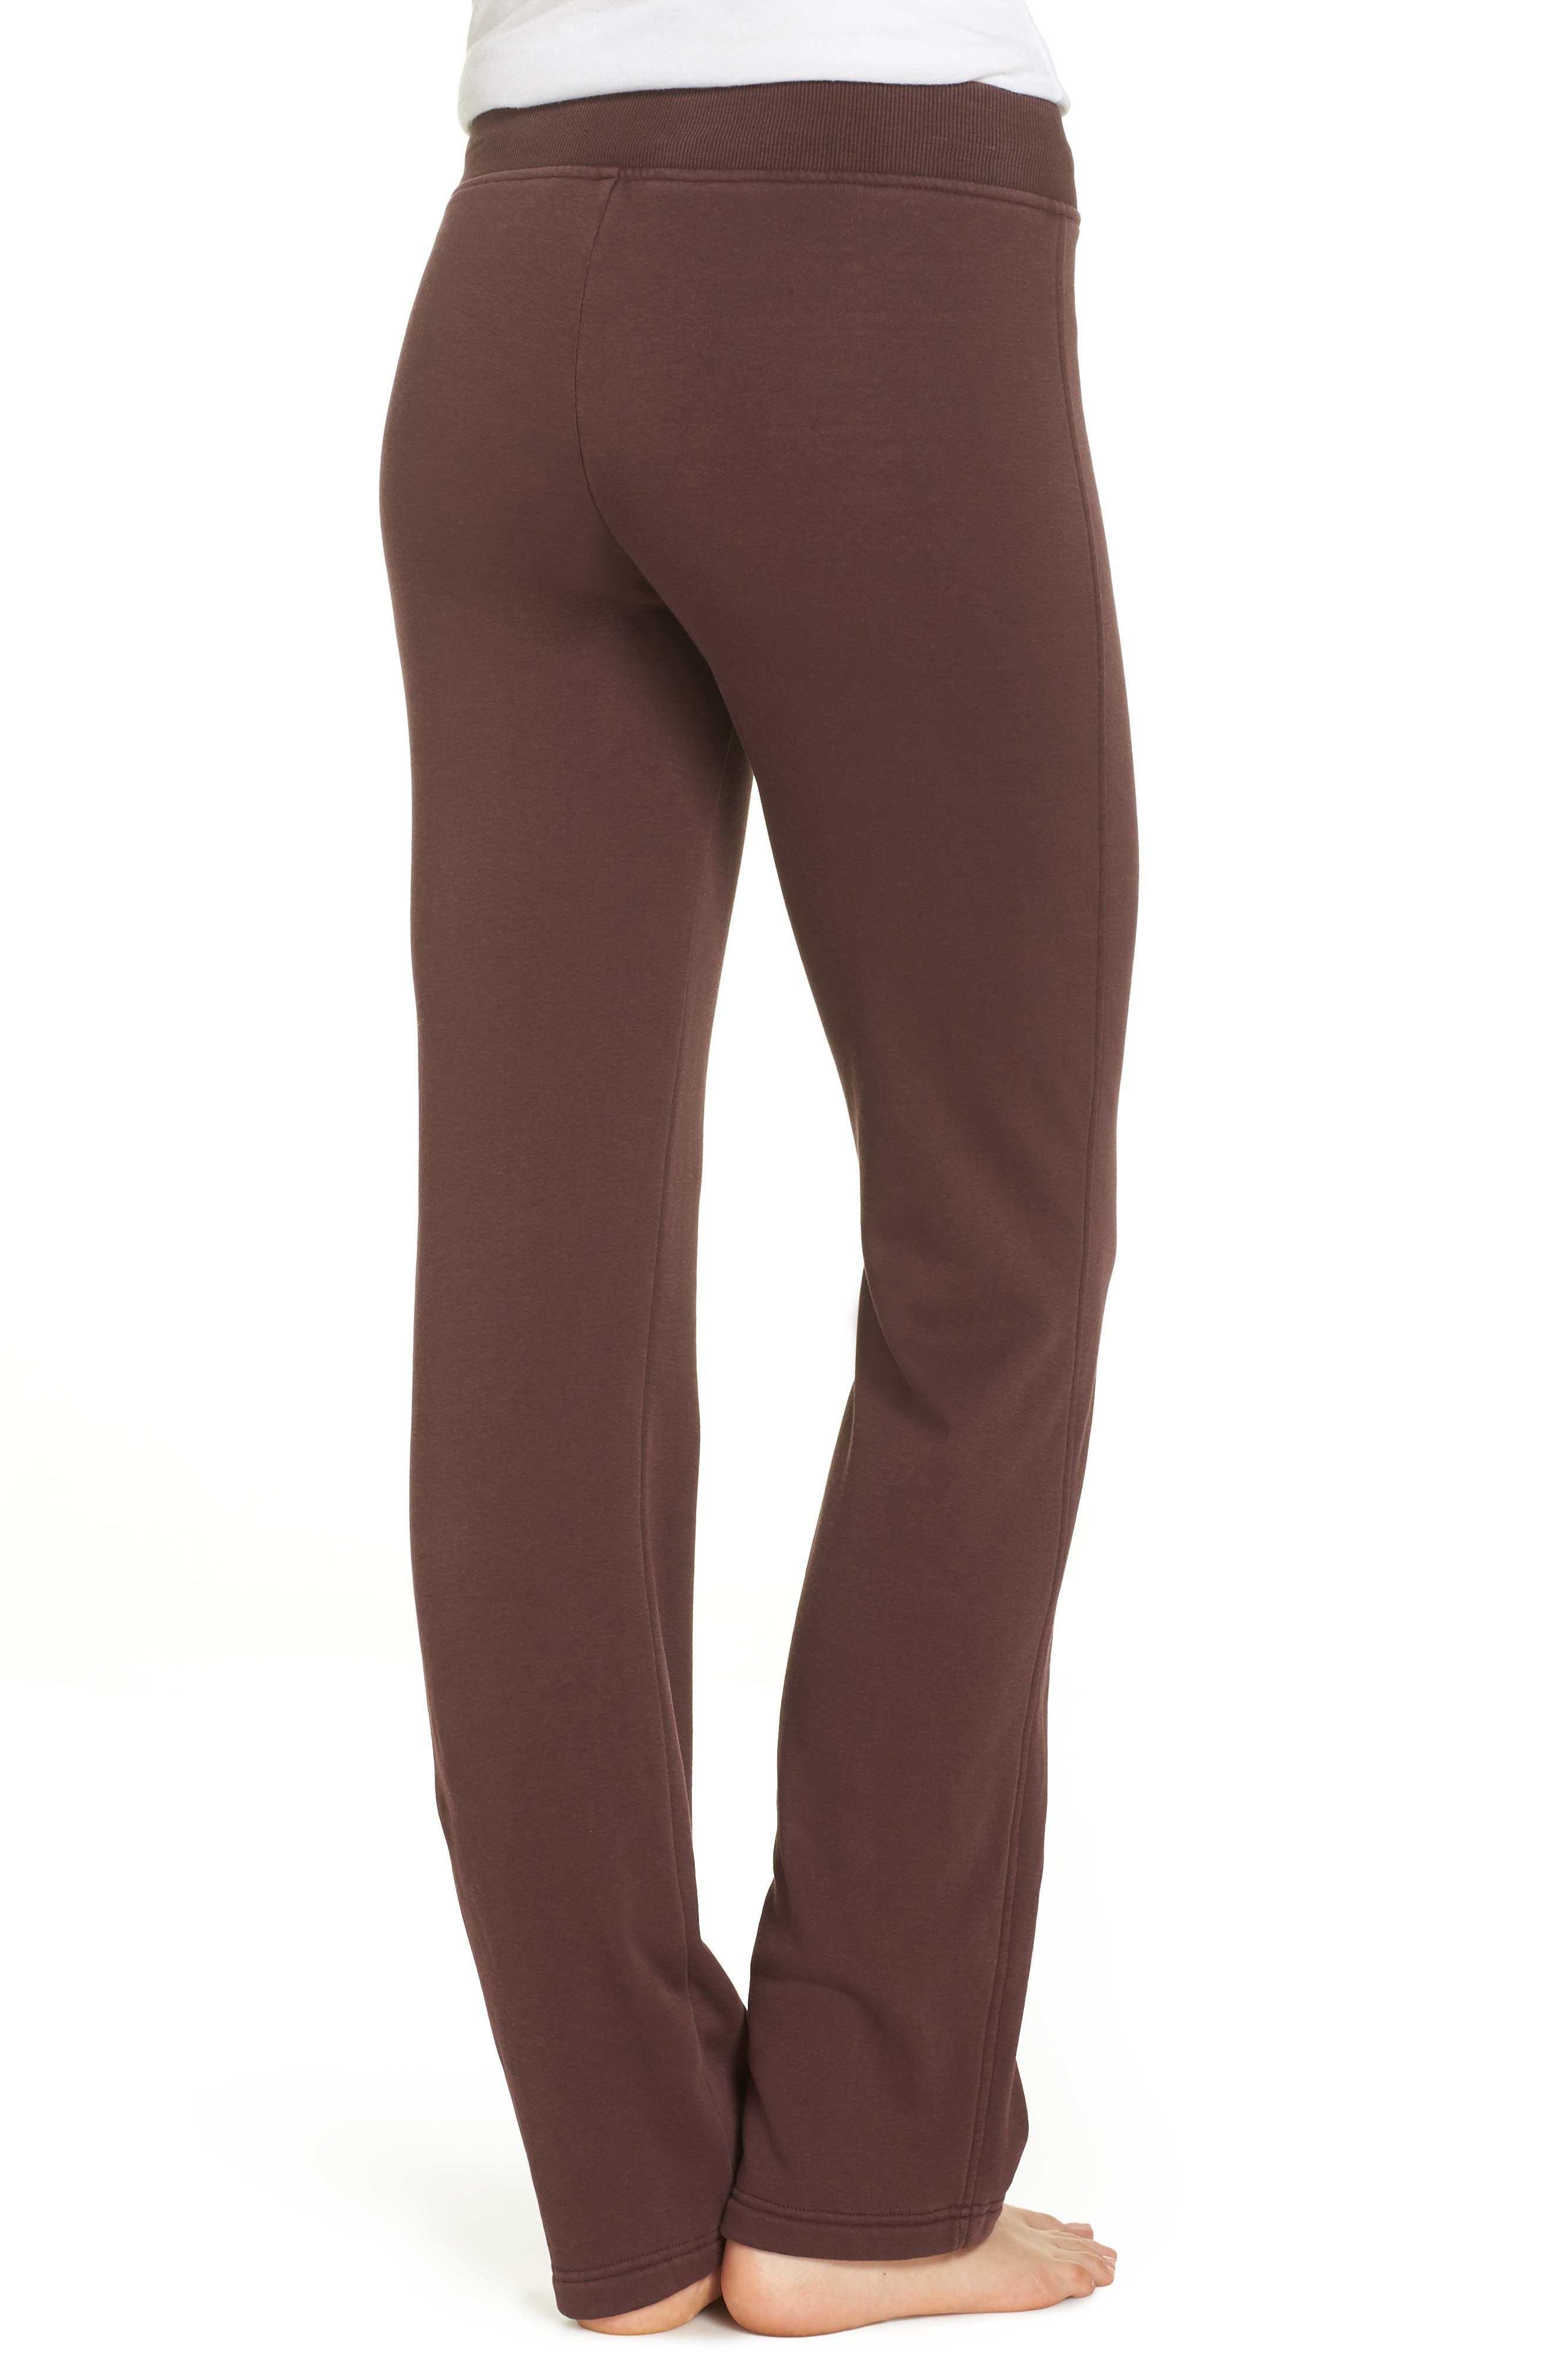 Penny Washed Lounge Pants,                             Alternate thumbnail 2, color,                             PORT